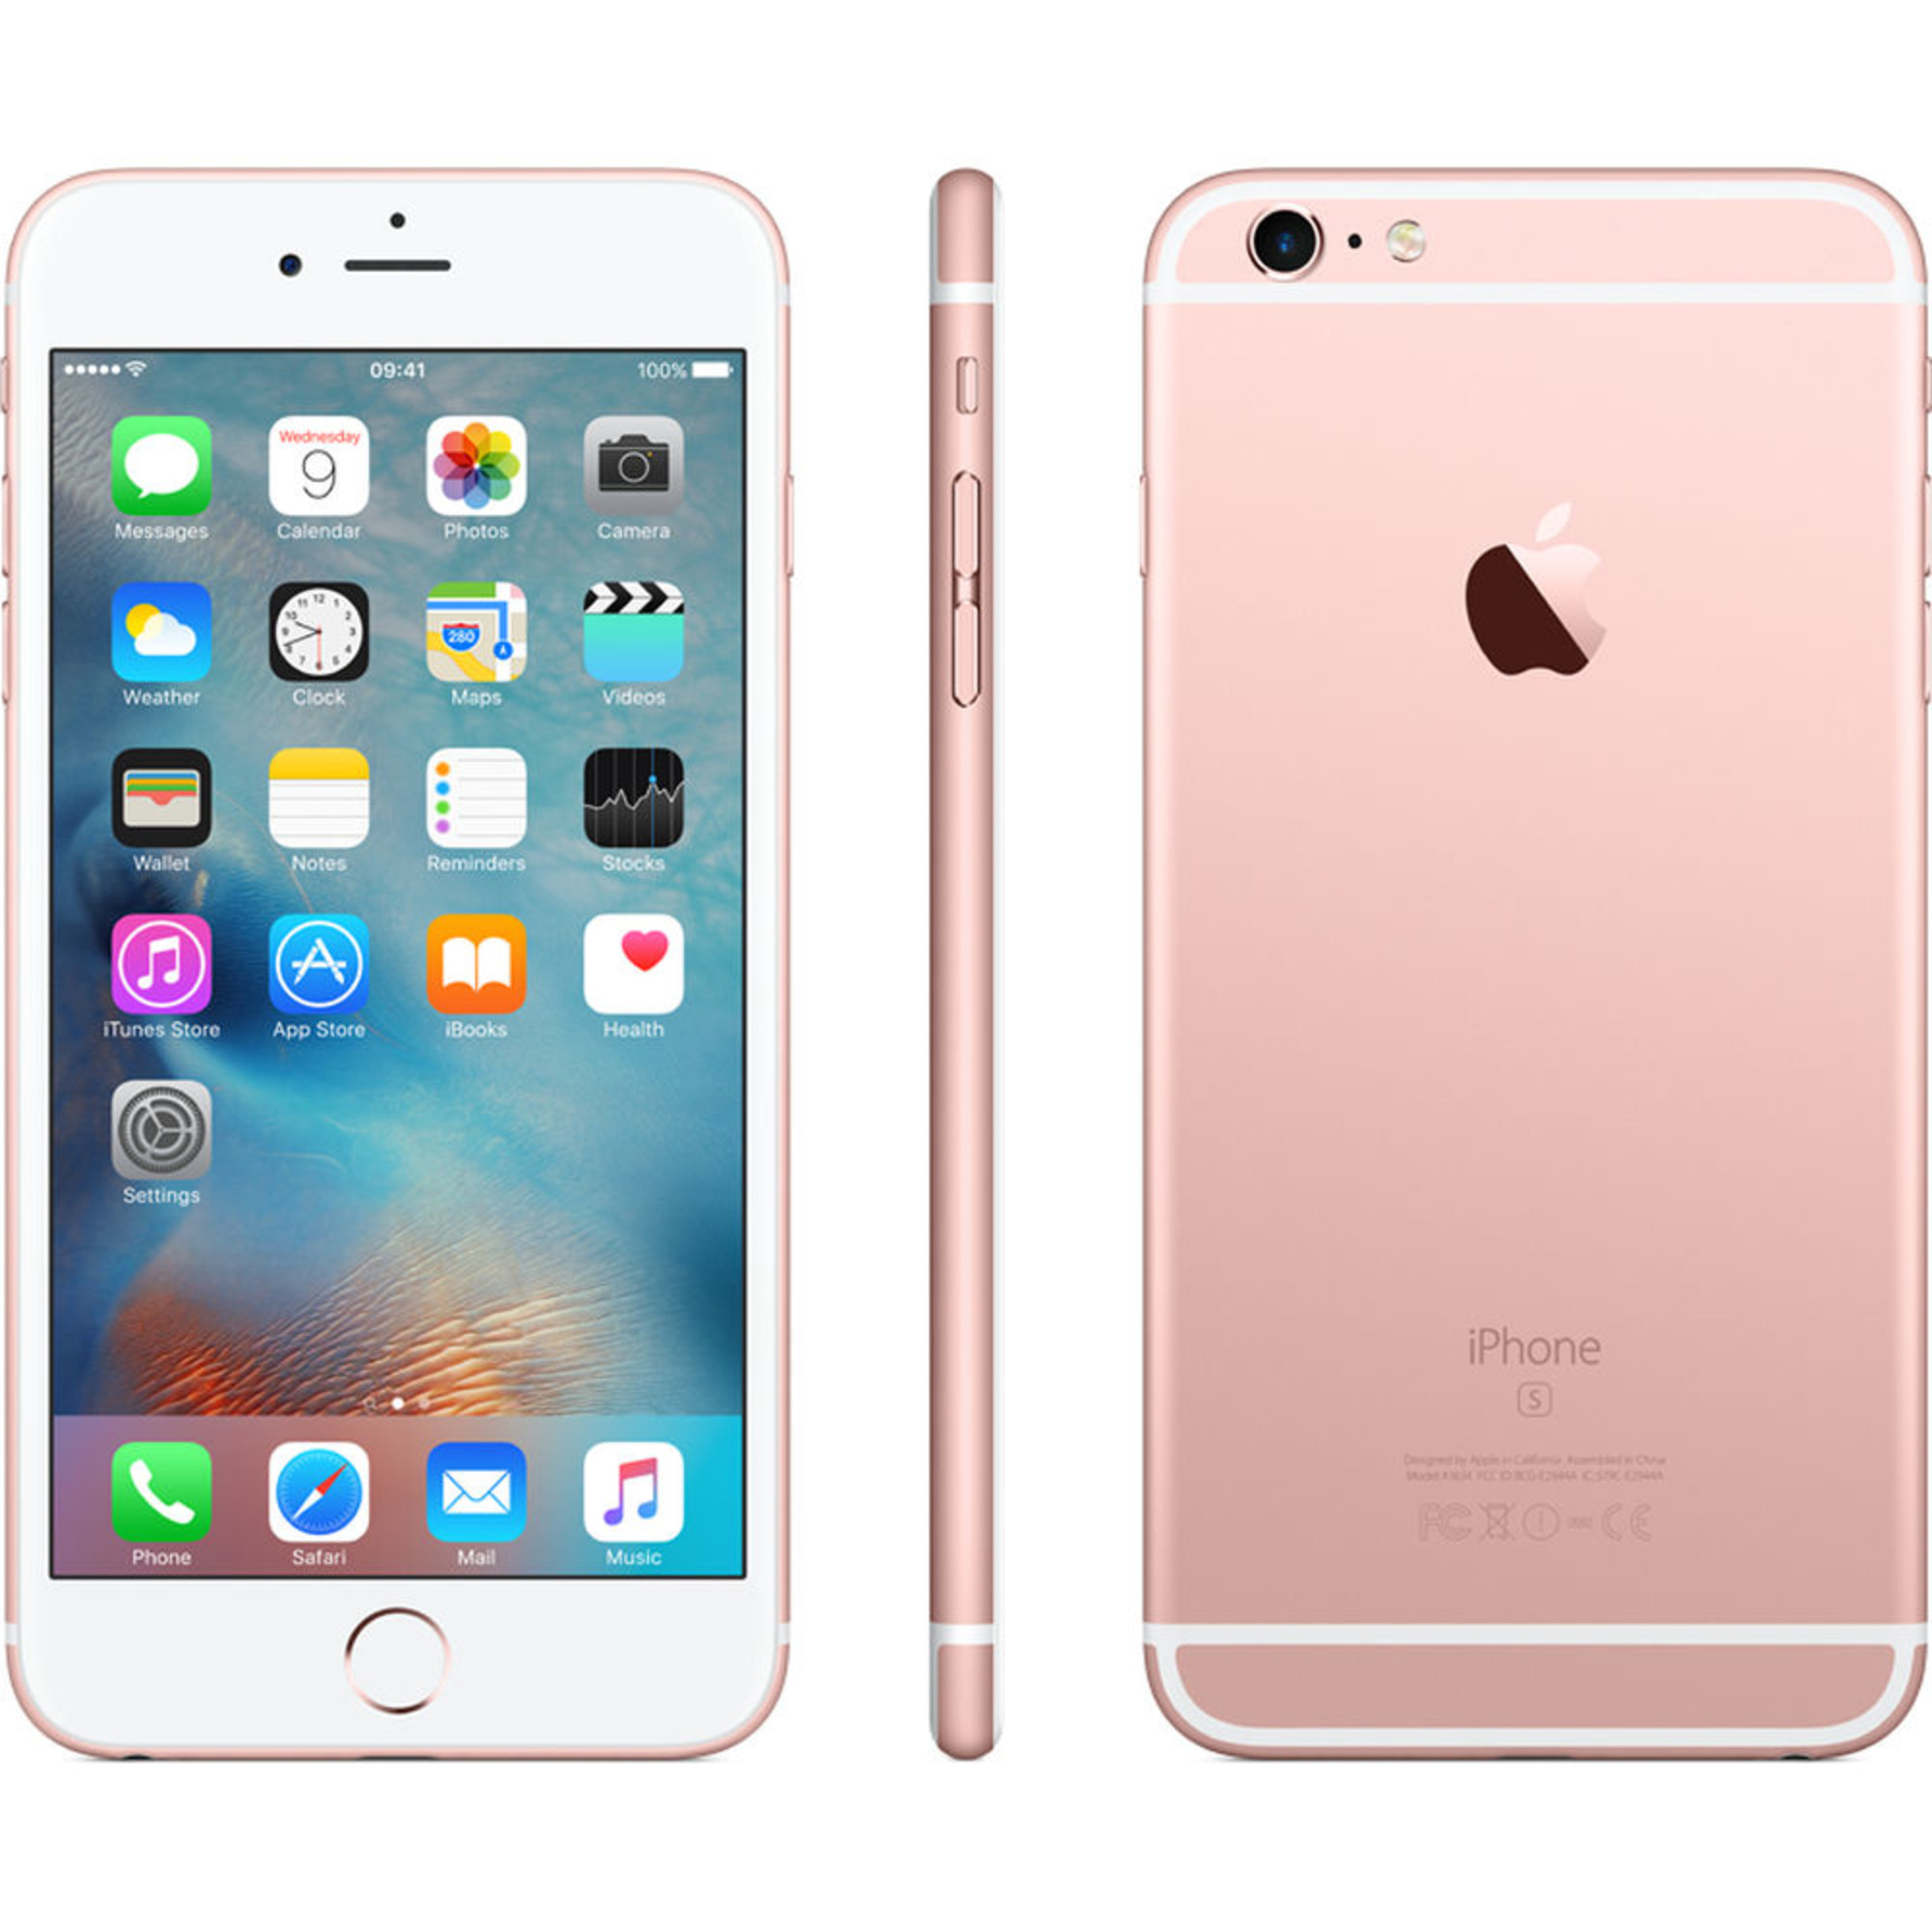 apple iphone 6s plus 16gb unlocked gsm 4g lte 12mp phone. Black Bedroom Furniture Sets. Home Design Ideas